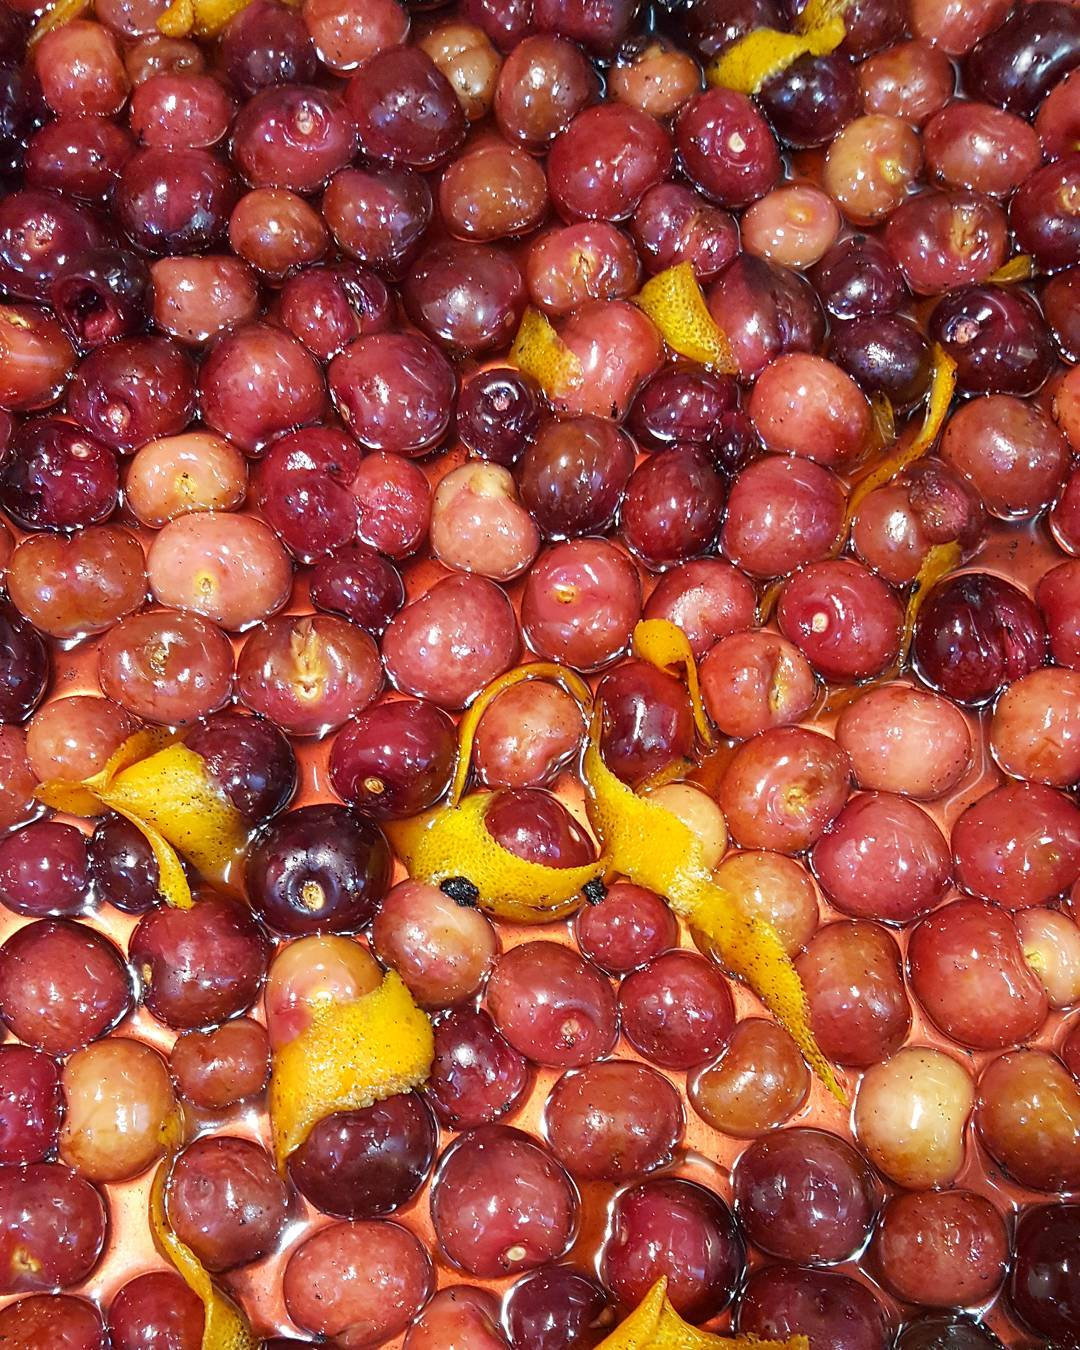 Three hour roasted cherries to top off our chocolate minthellip